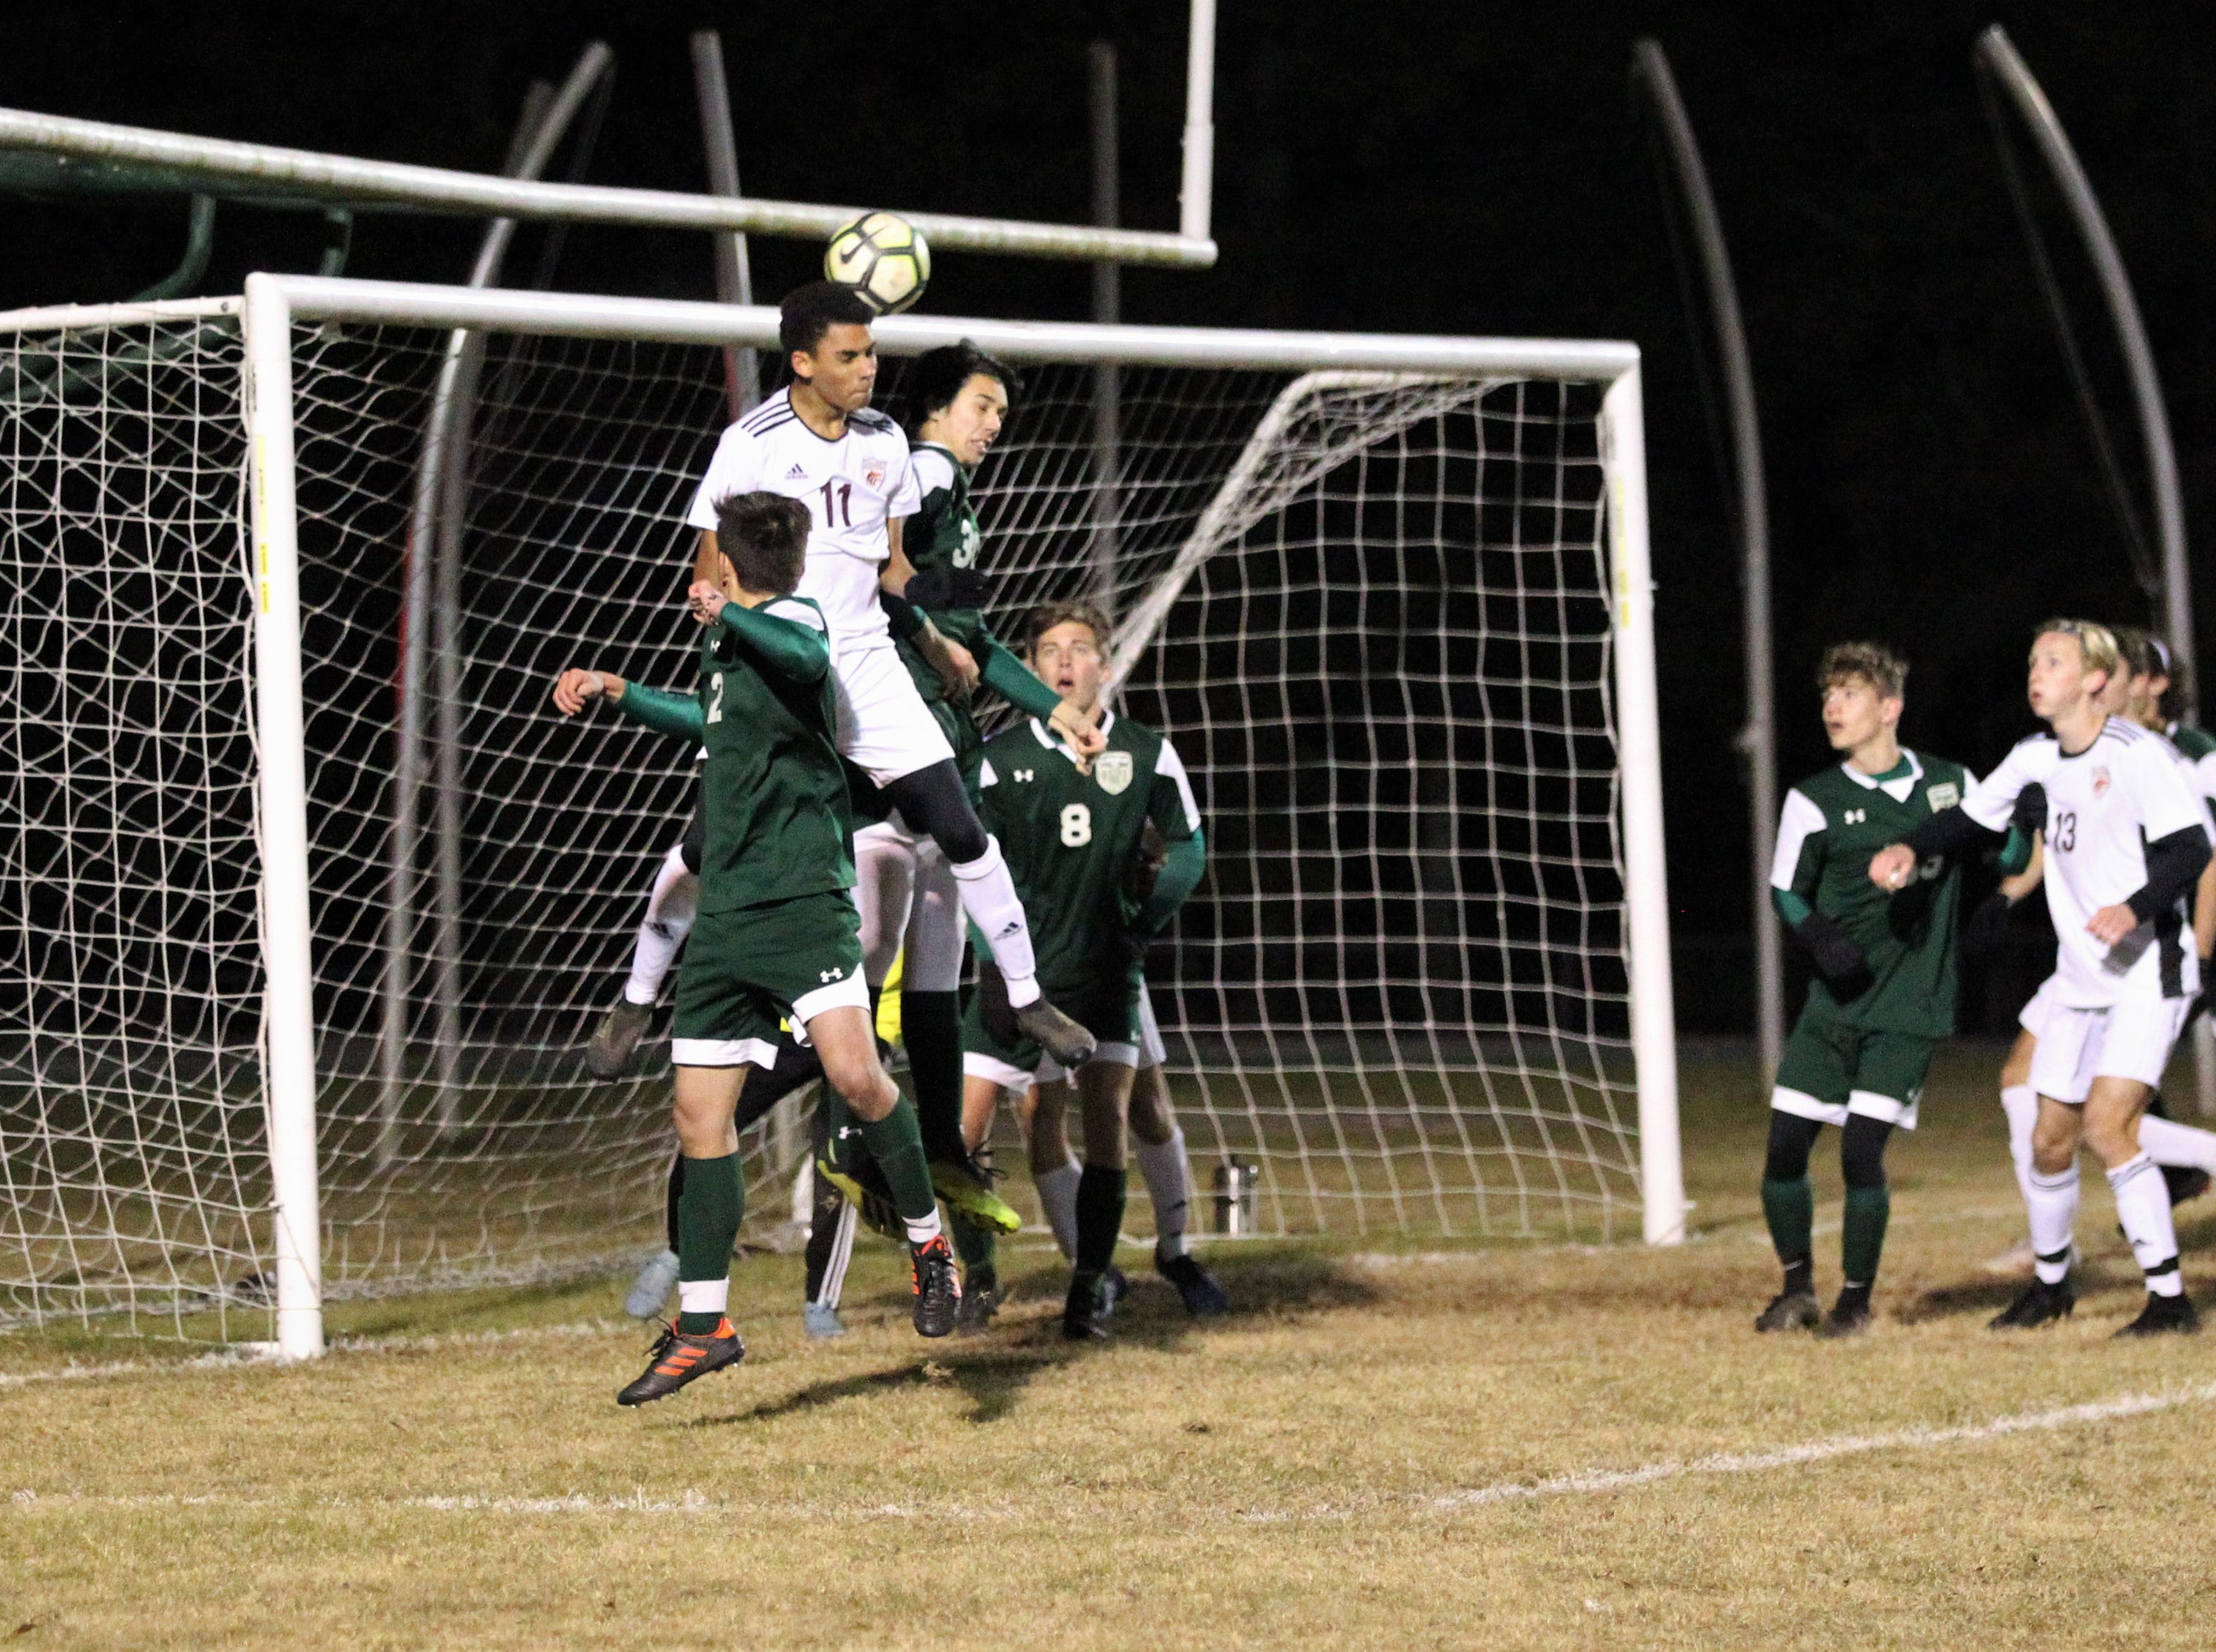 Chiles senior Will Johnson flicks a header towards back post off a throw-in as Chiles' boys soccer team beat Lincoln 1-0 in a District 2-4A semifinal on Jan. 30, 2019.